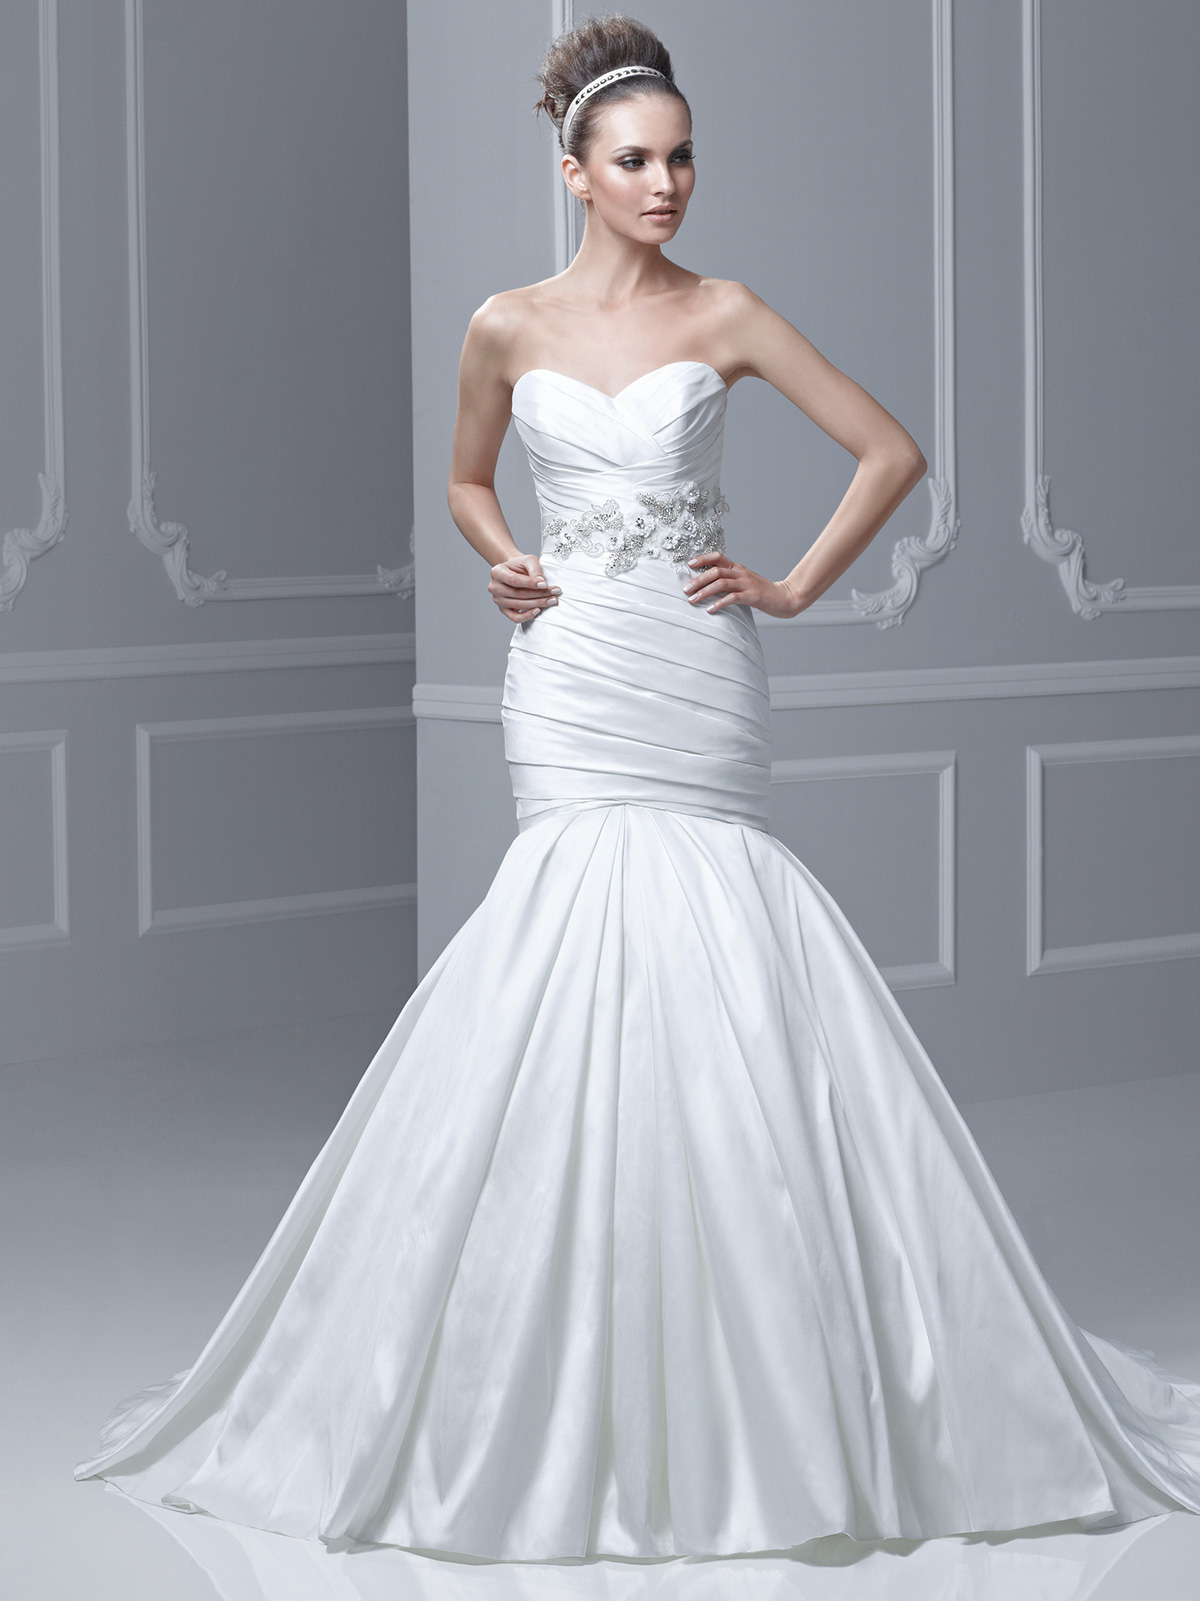 Strapless Lace Accent Ball Gown Blue by Enzoani Bridal Gown Formosa ...